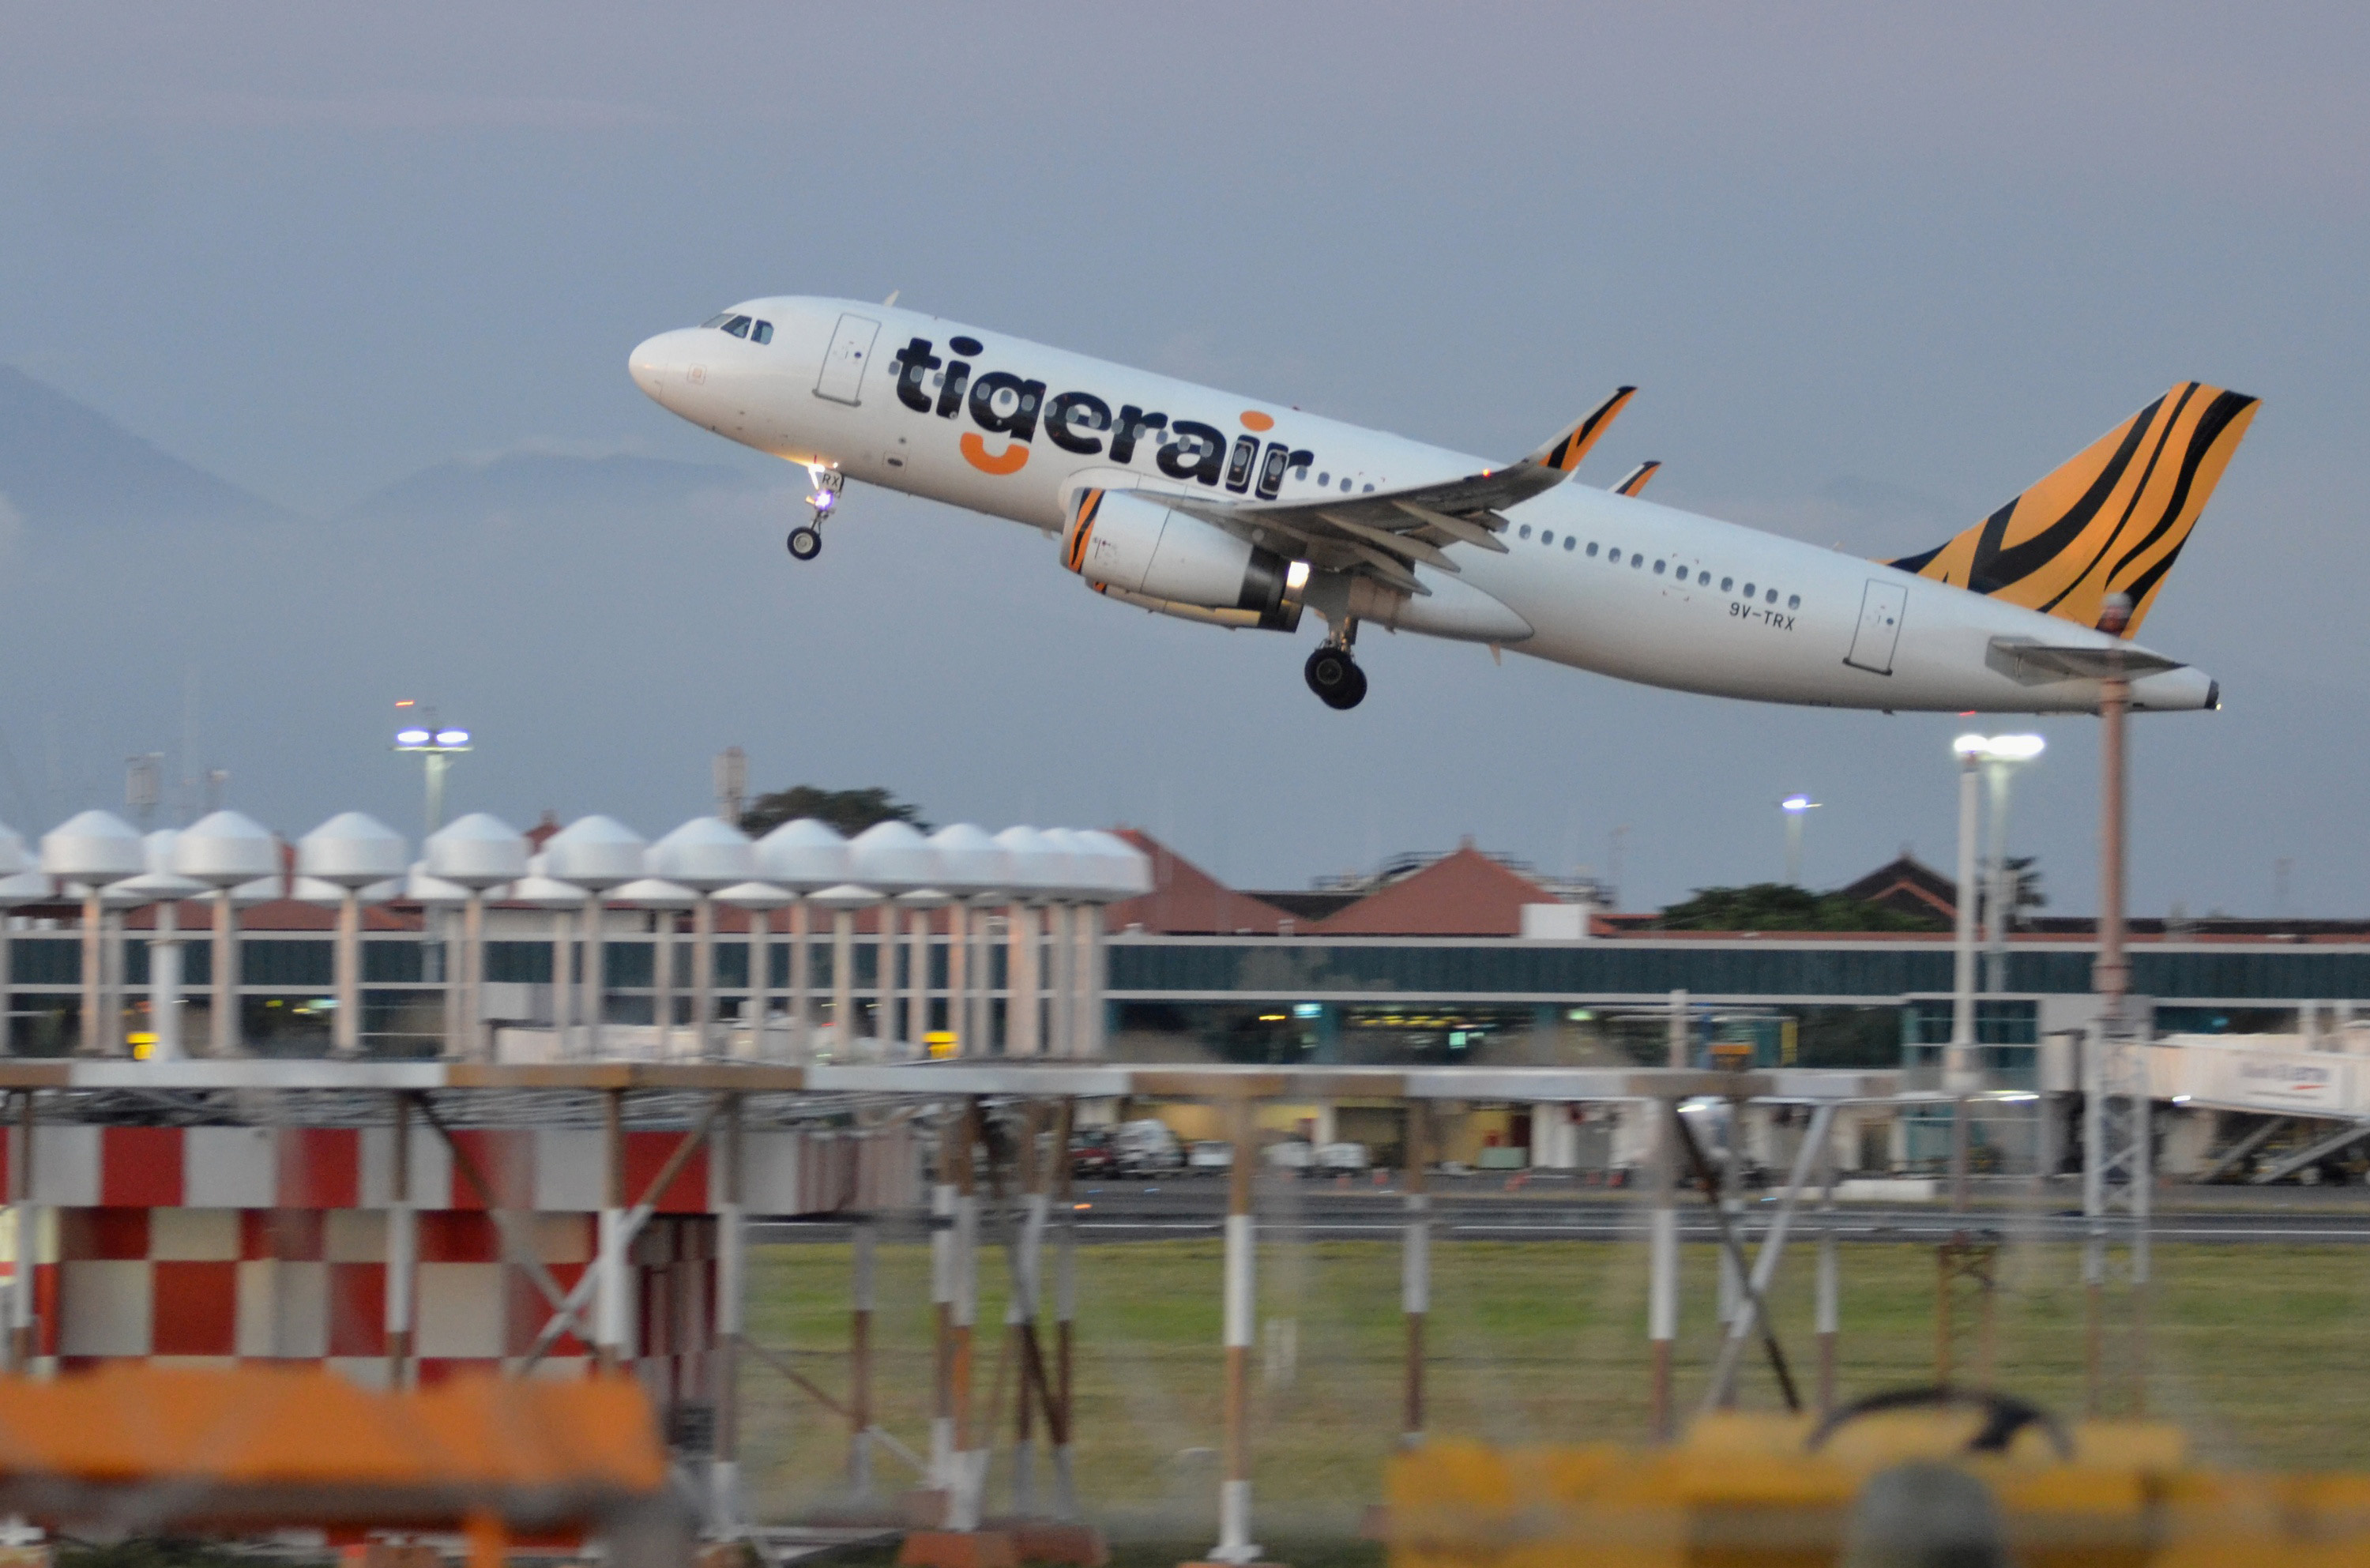 Tigerair has yet to reveal when it will be able to resume flights in and out of Bali